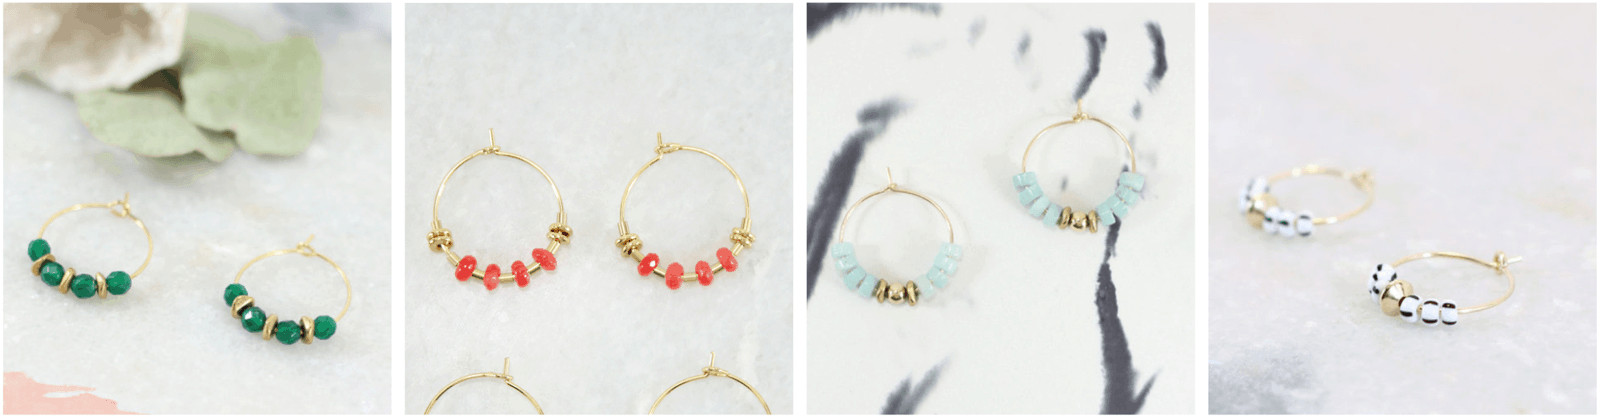 French Jewelry Brand Les Pierrettes Earrings OuiPlease OuiBlog